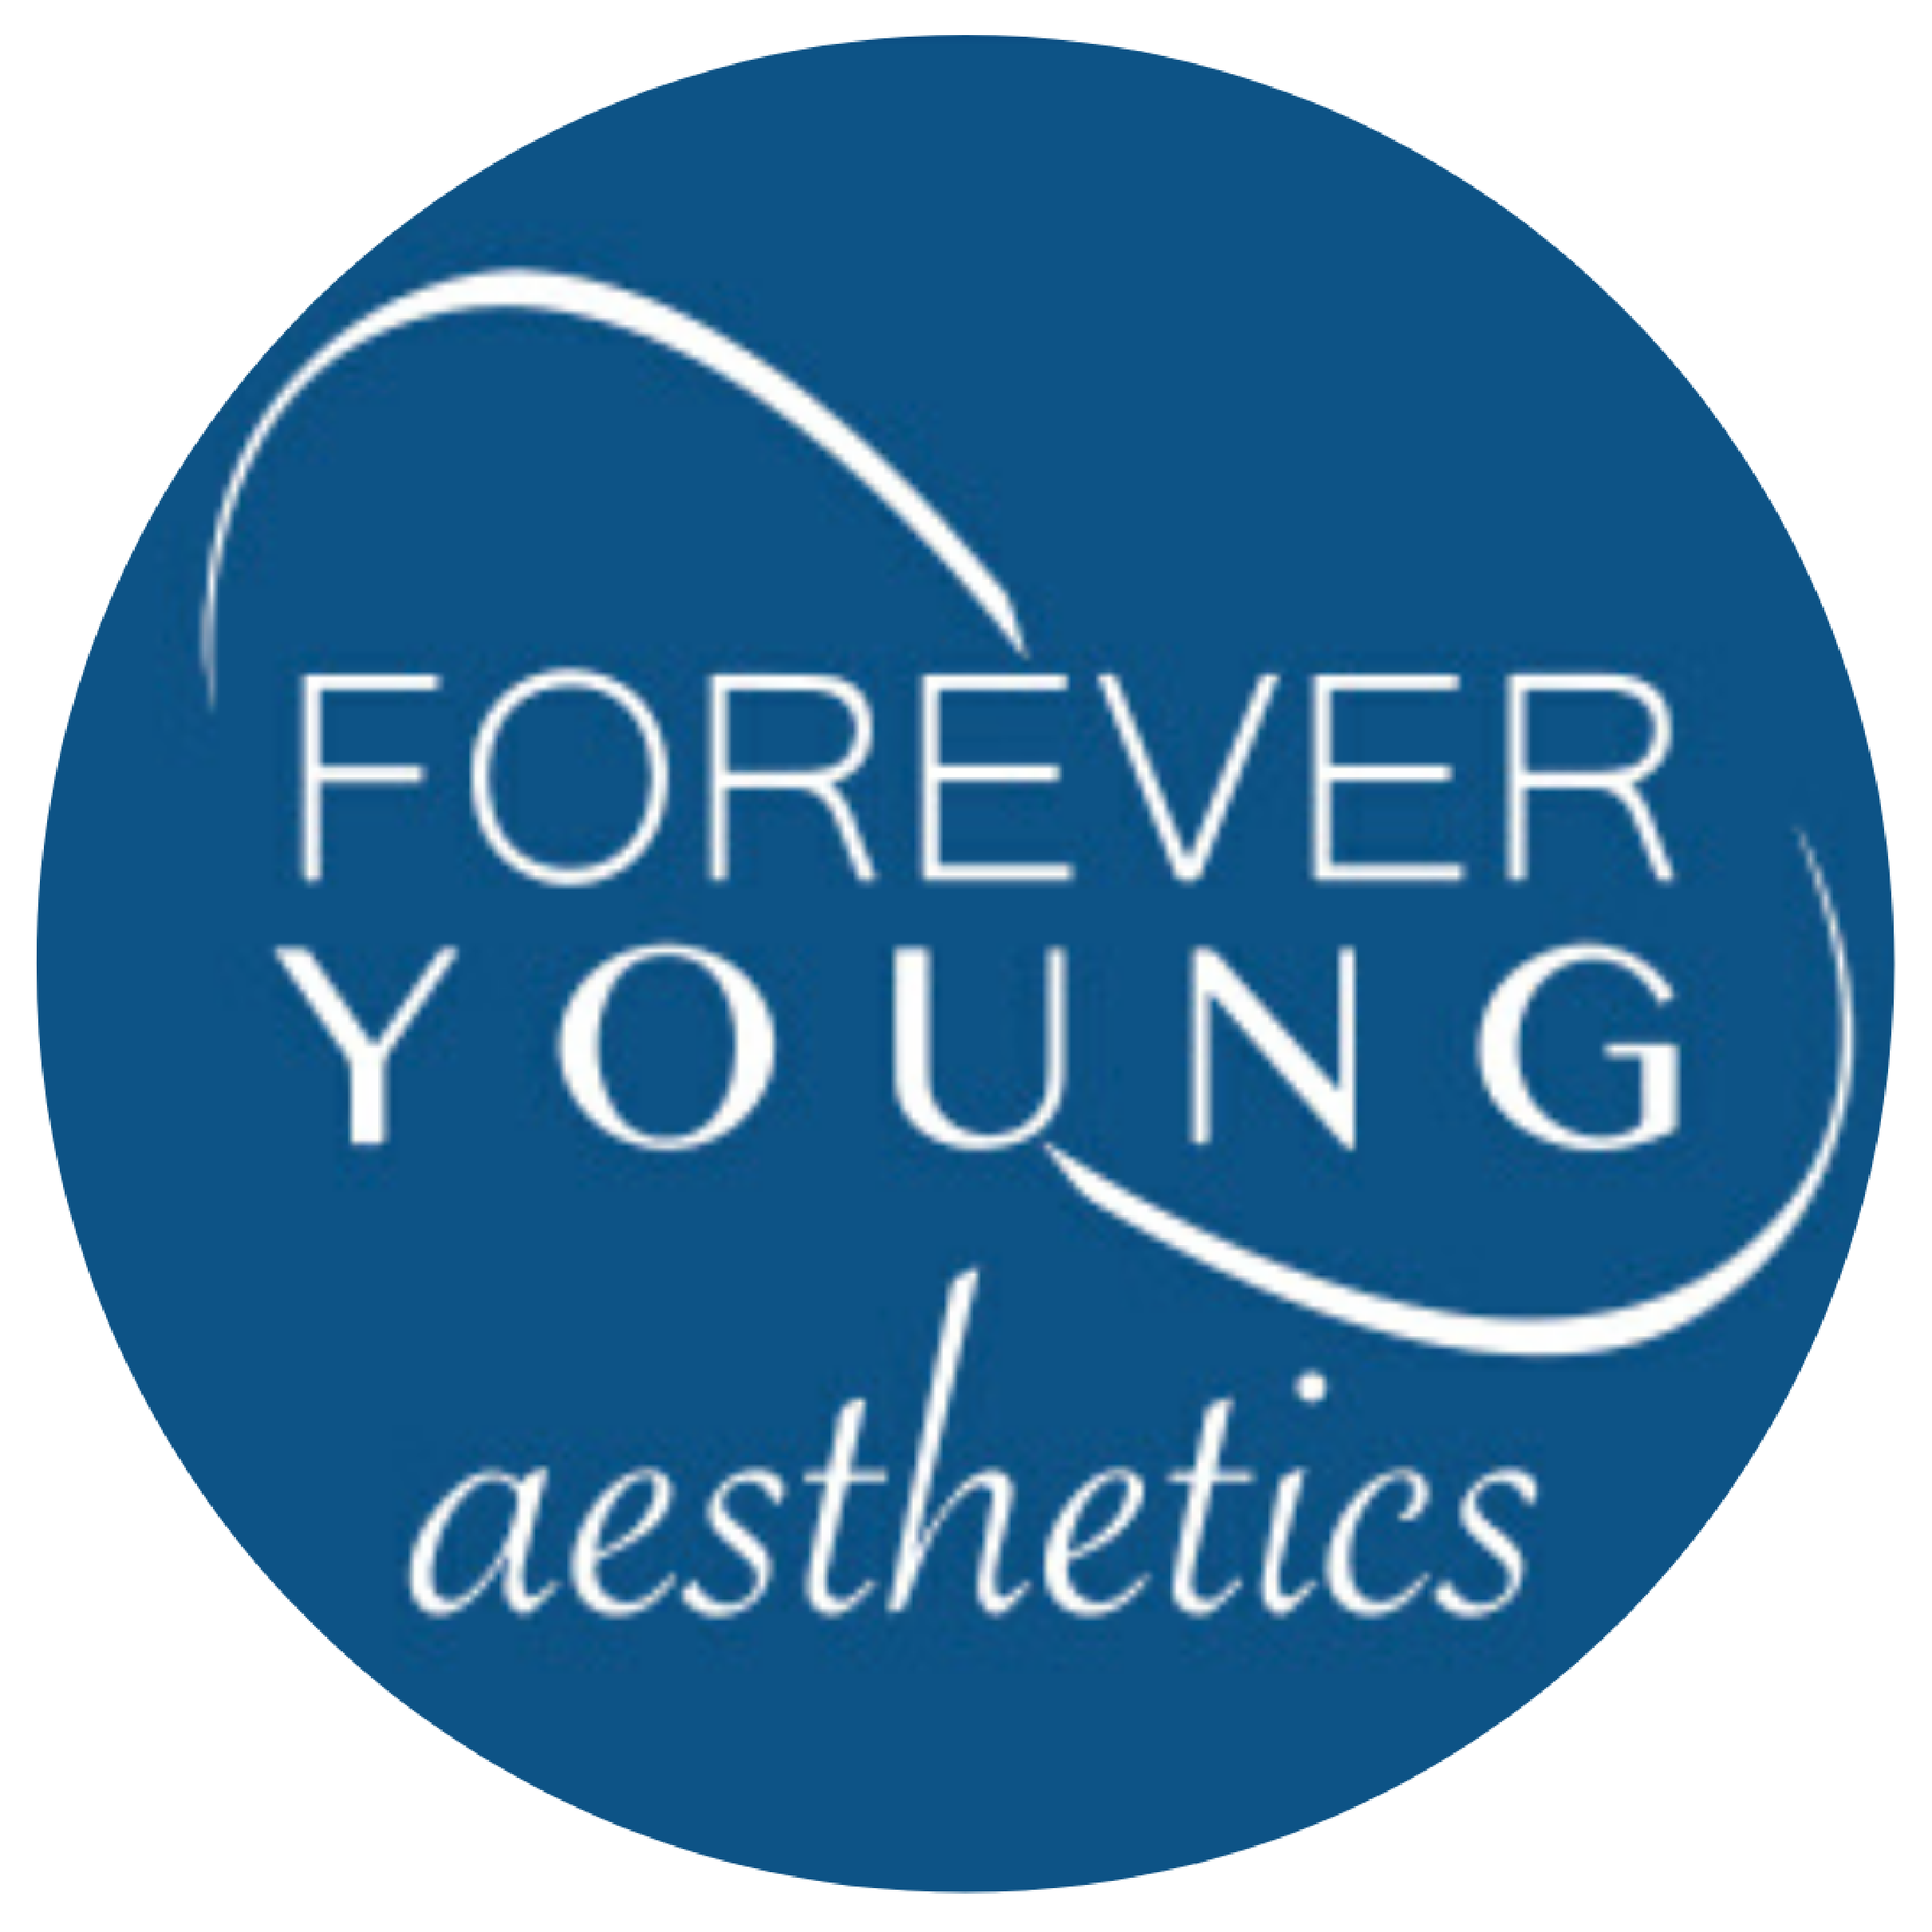 forever young aesthetics round logo